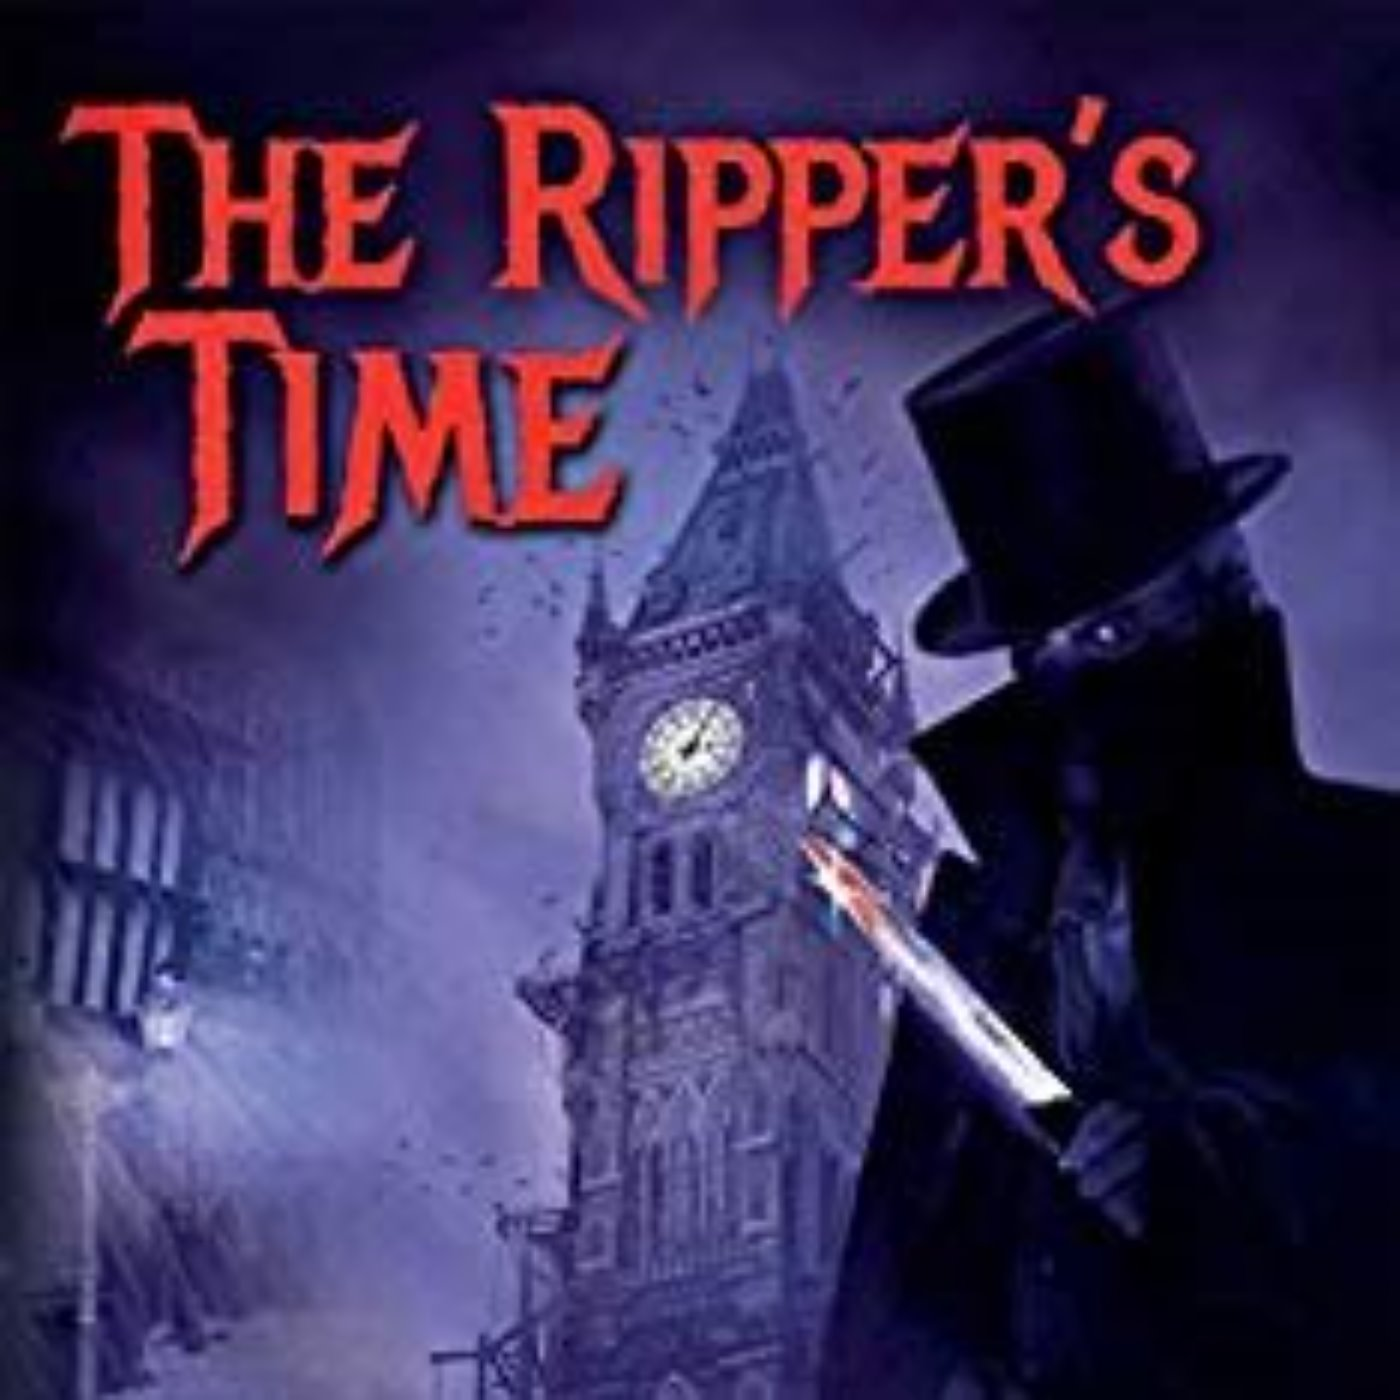 MARK VOGEL - THE RIPPER'S TIME